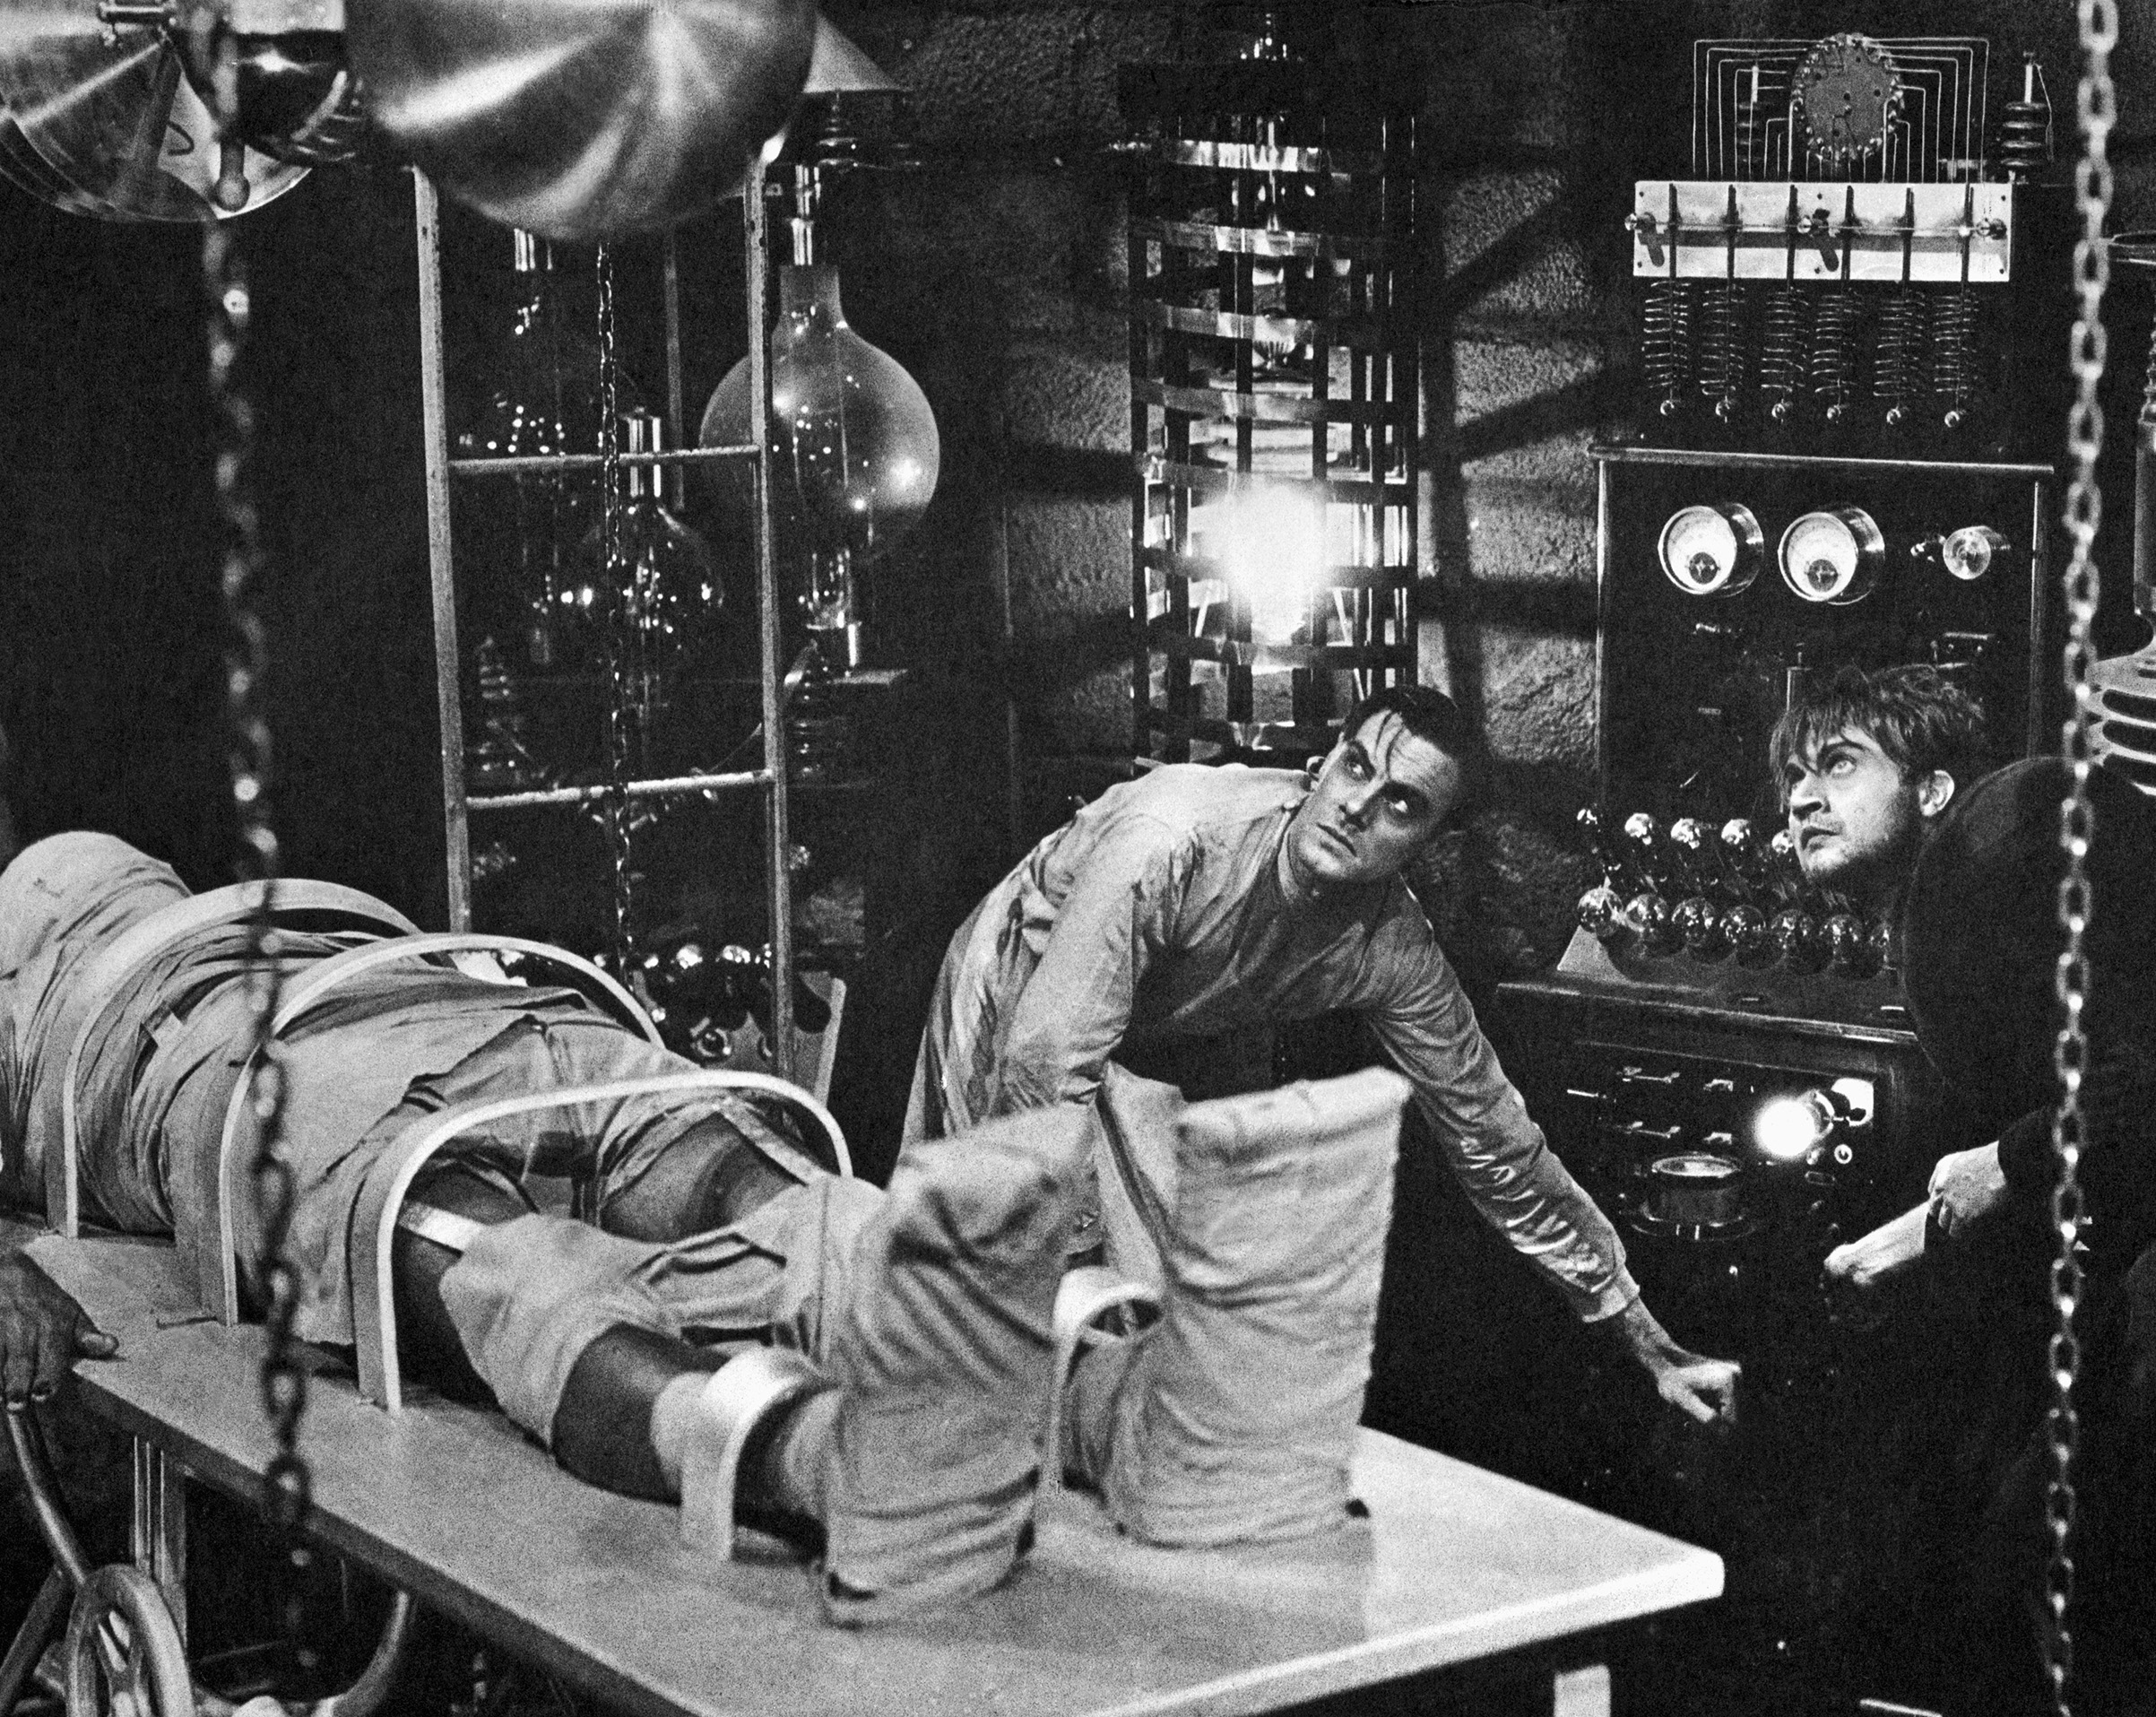 Colin Clive, as Dr. Frankenstein, and Dwight Frye, as his assistant Fritz, prepare to bring their monster to life in a scene from the 1931 movie version of Mary Shelley's Frankenstein.